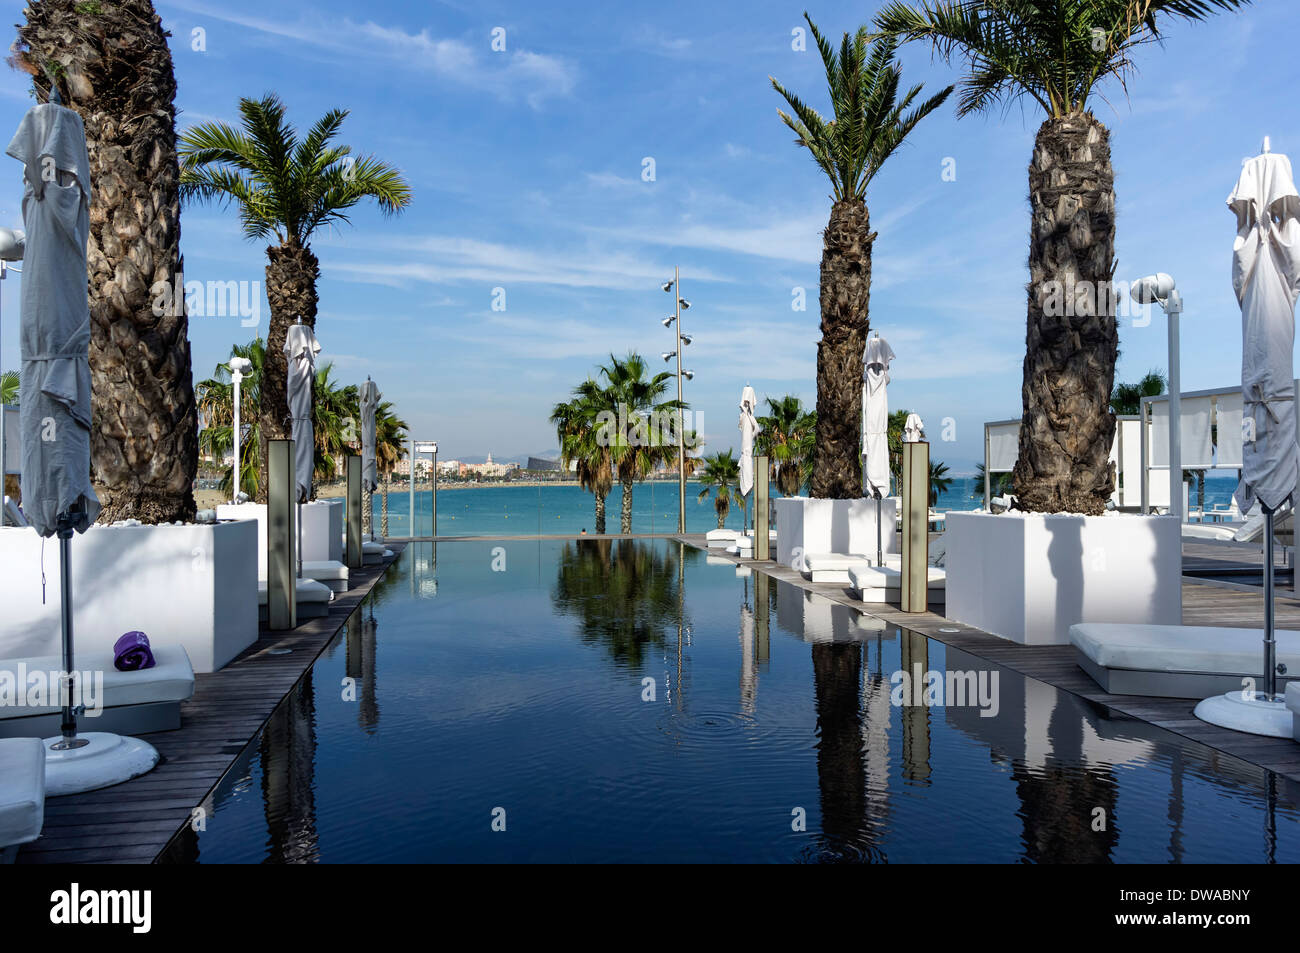 Pool Of Five Star W Hotel In Barcelona Spain Stock Photo Royalty Free Image 67226263 Alamy